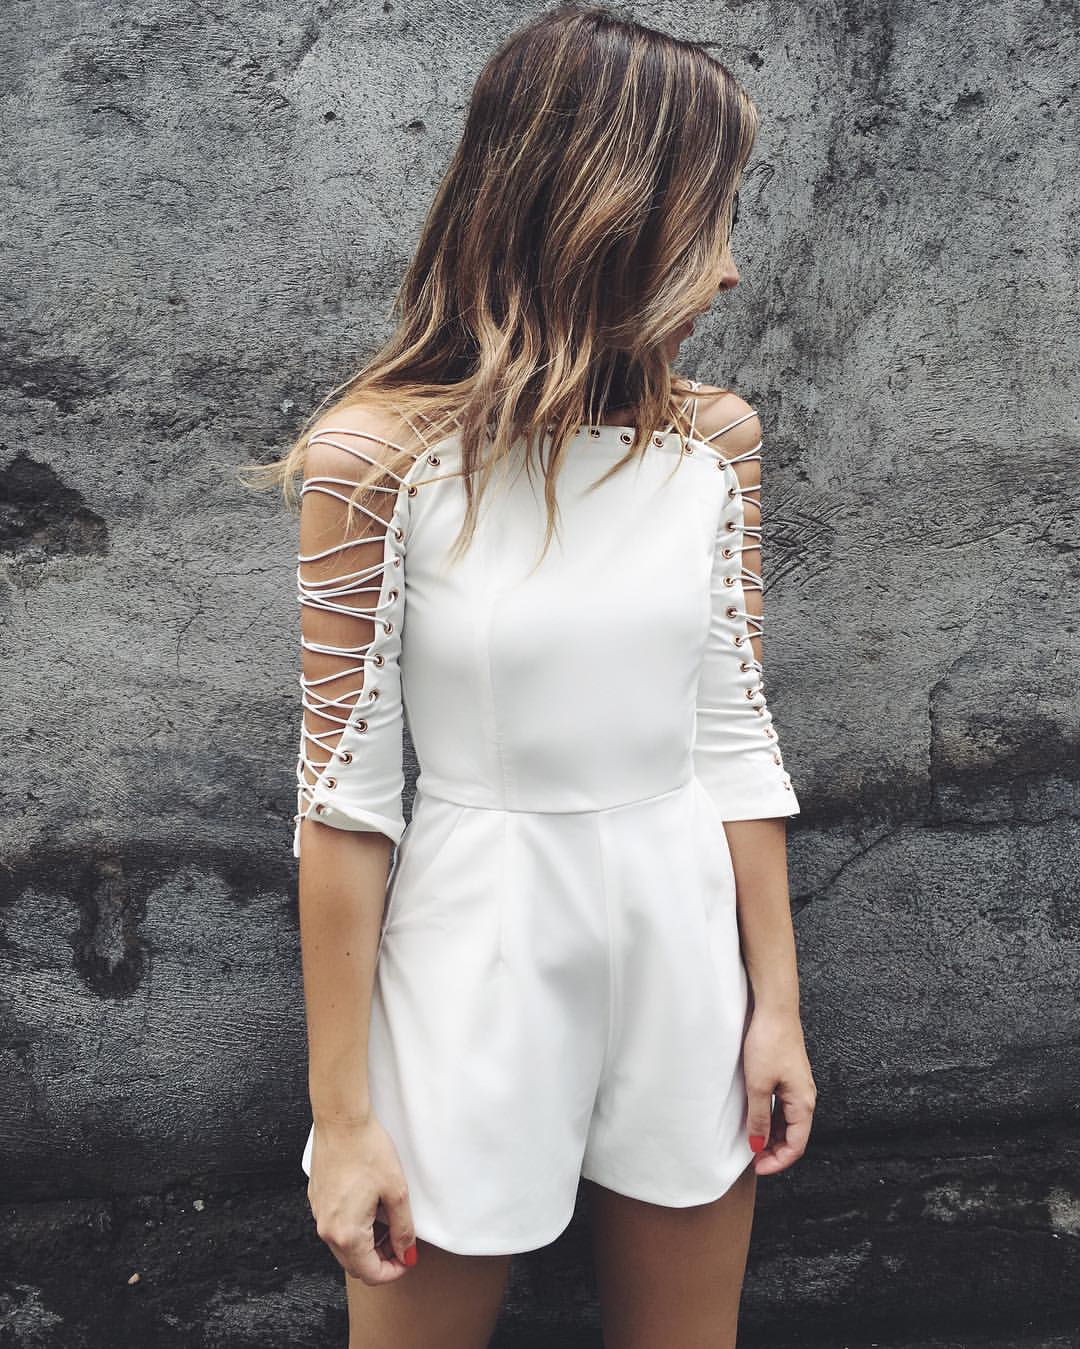 White Lace Up Detail by Friend in Fashion.jpg